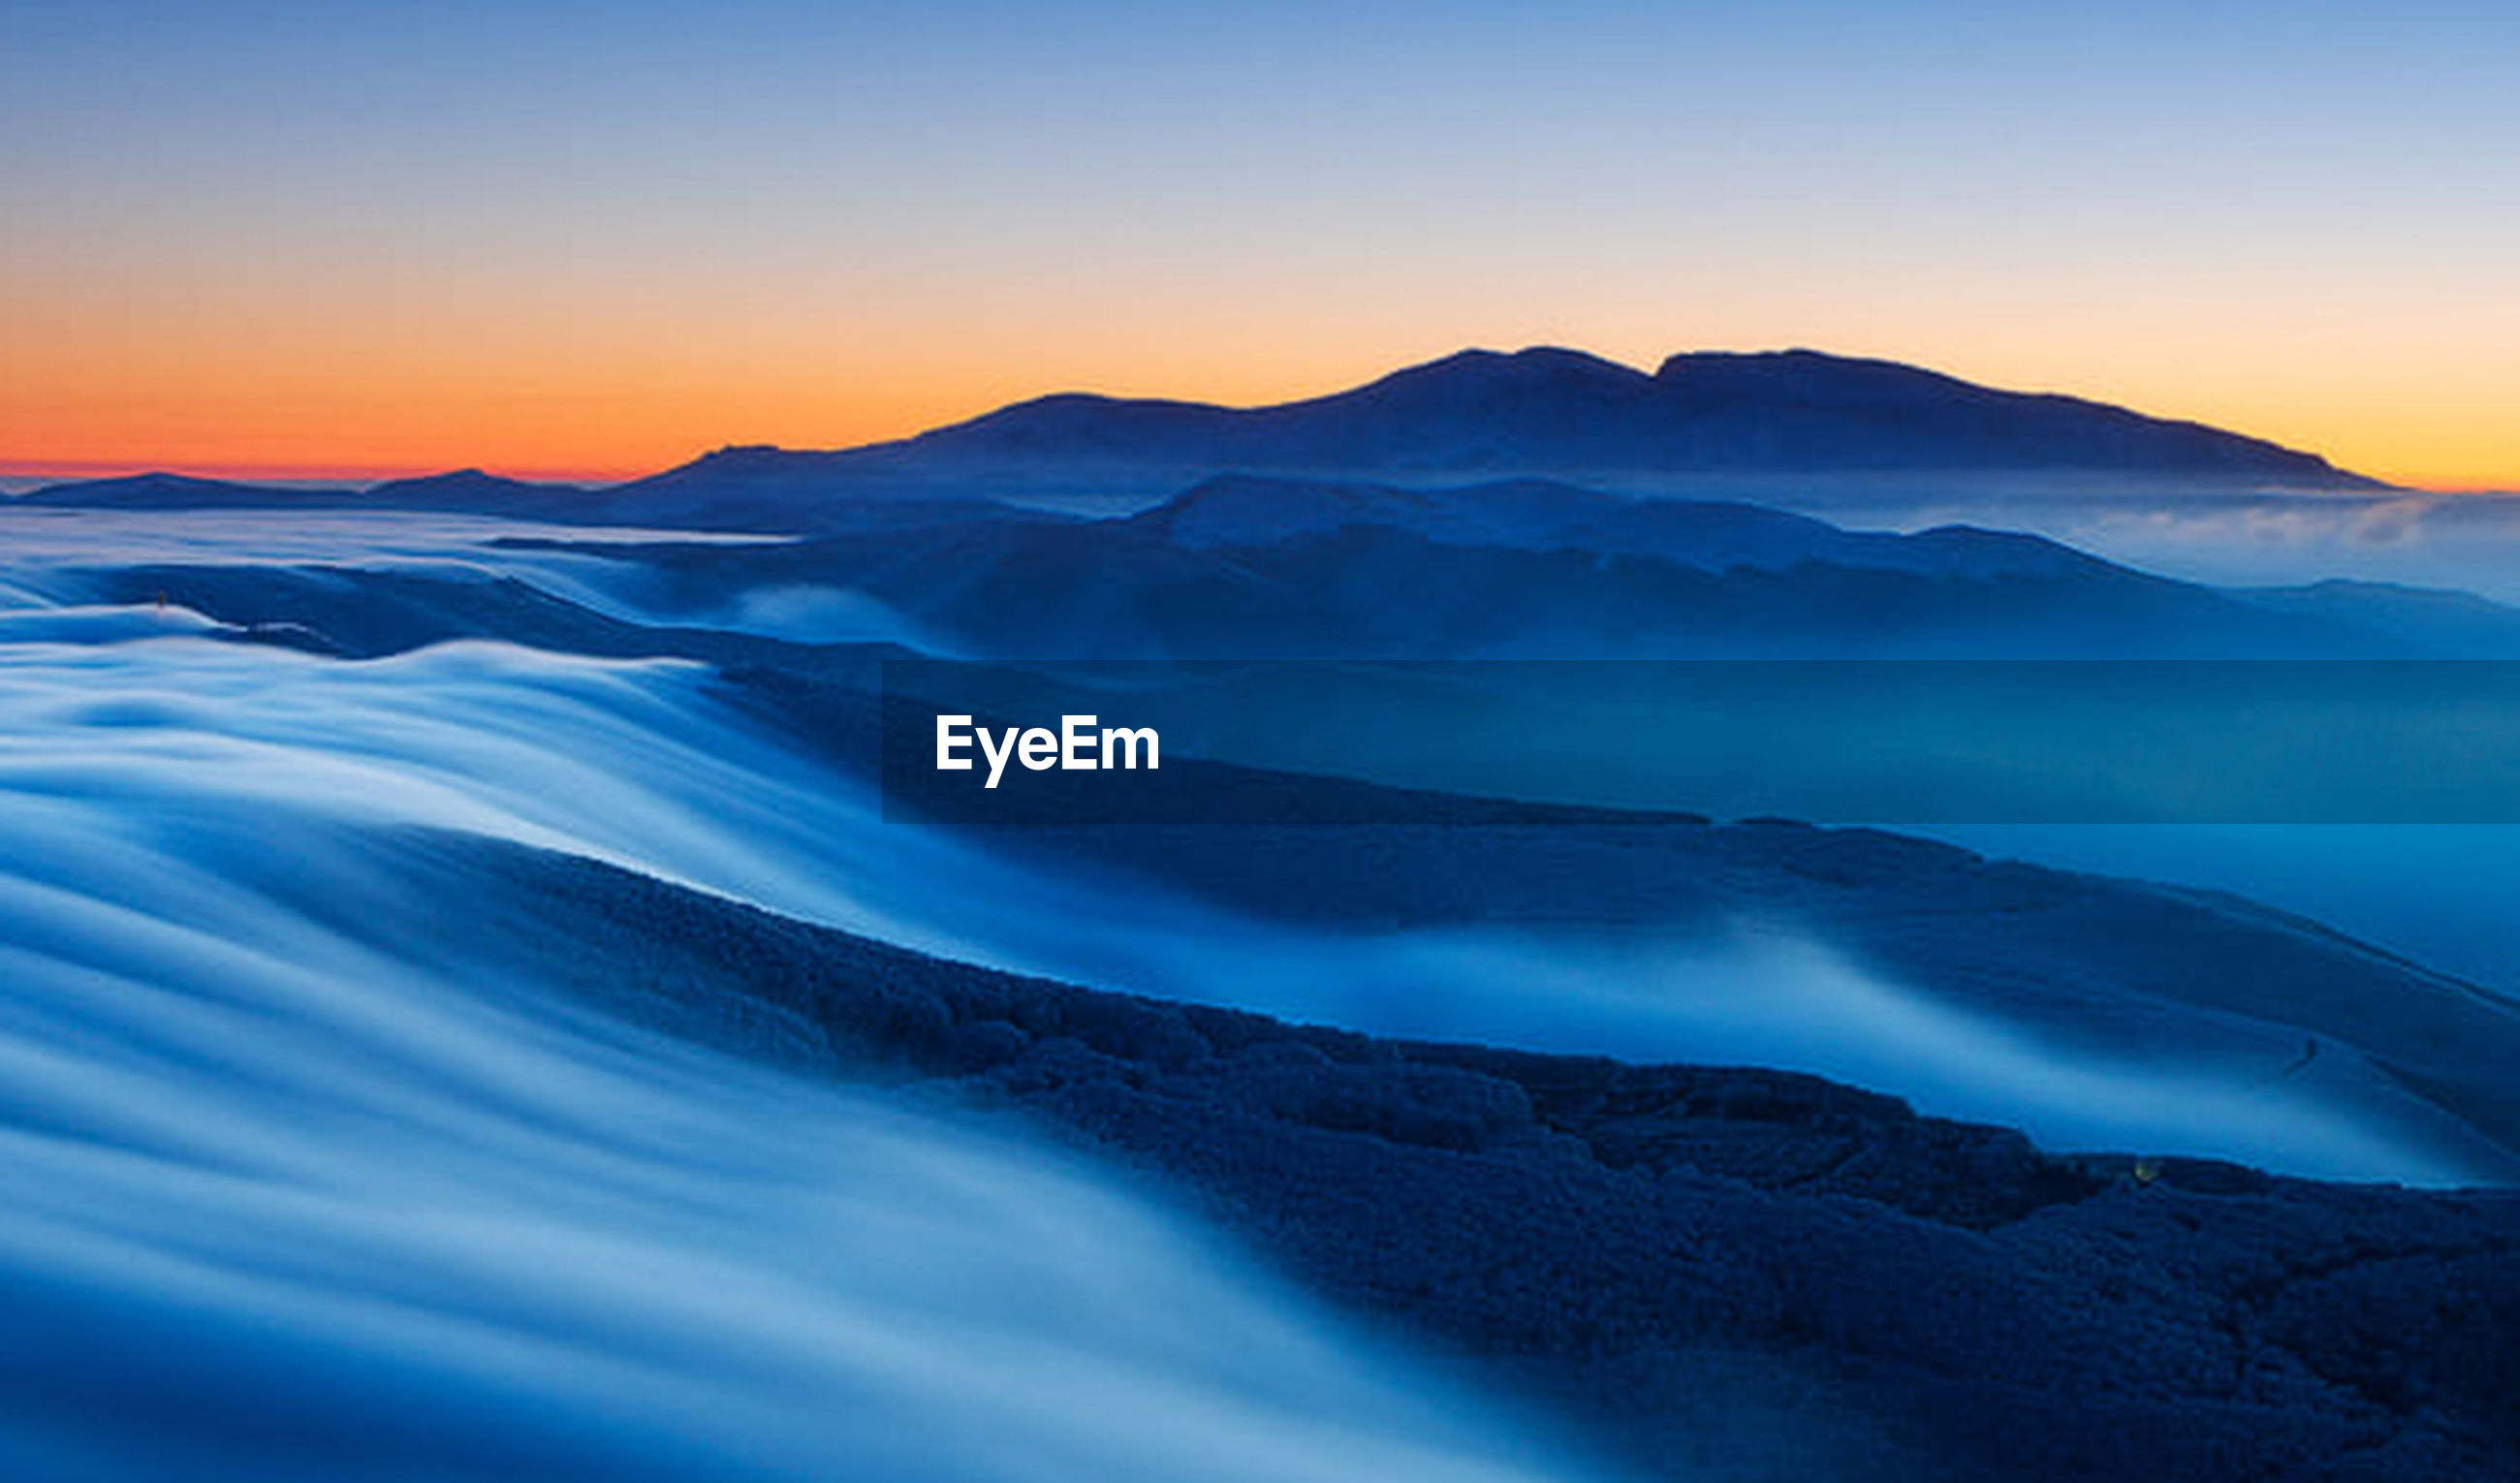 SCENIC VIEW OF MOUNTAINS AGAINST SKY AT DAWN